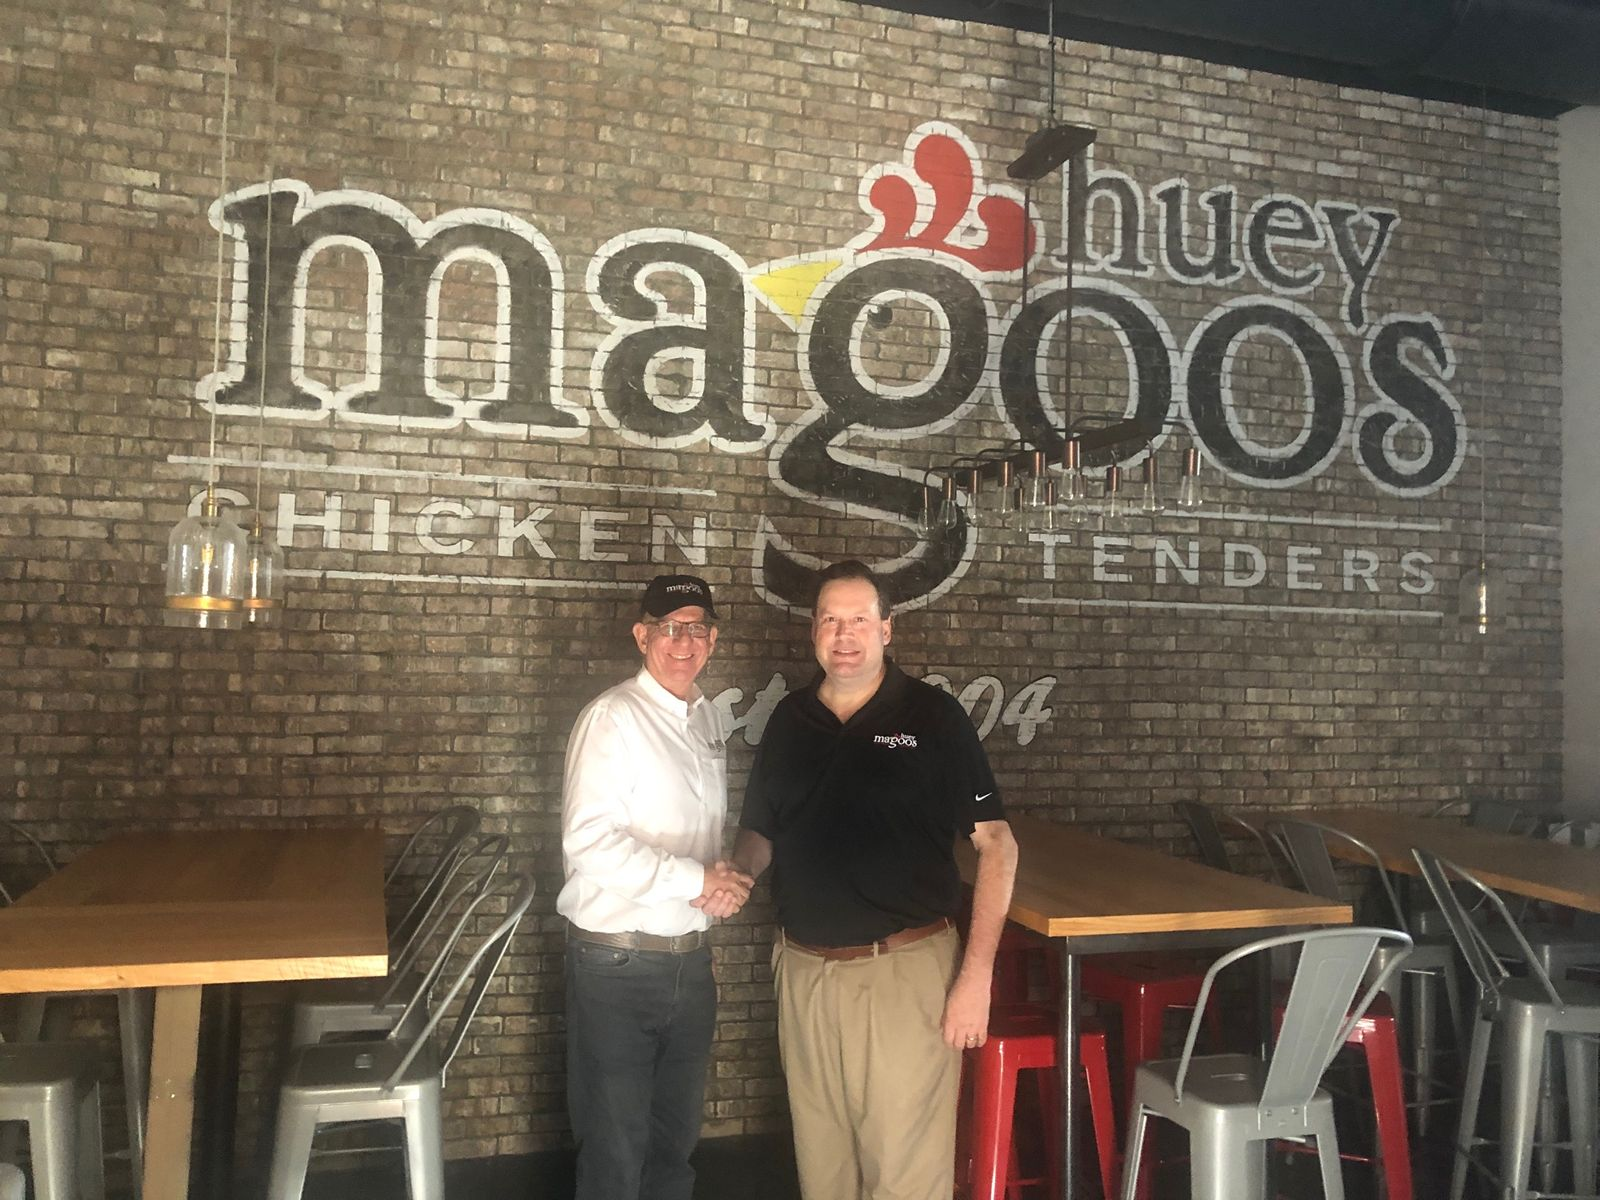 Huey Magoo's President and CEO Andy Howard with Evan Klingman